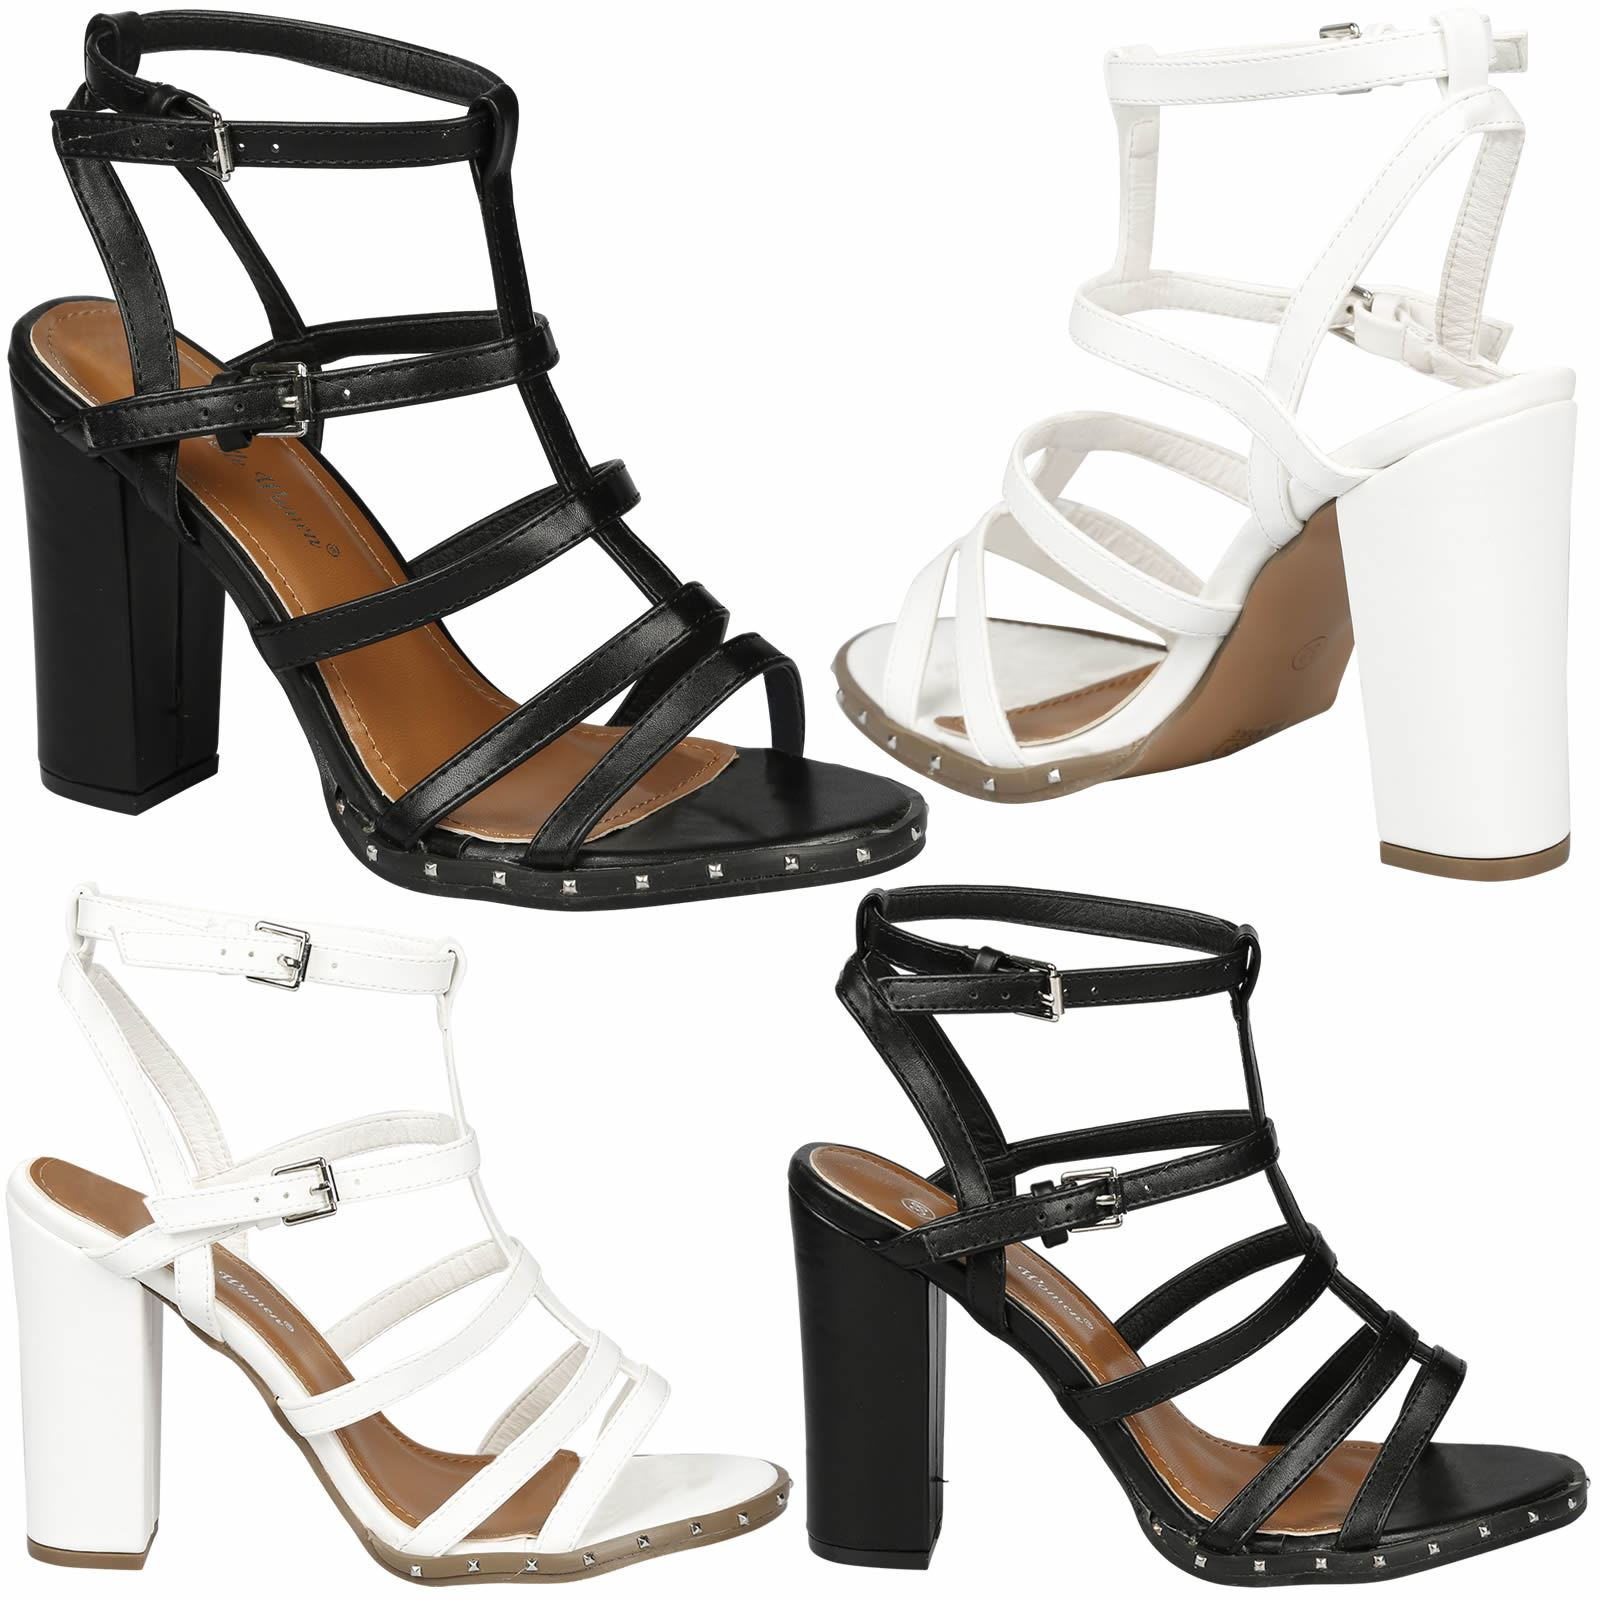 426c64f9a1a Details about Tianna Womens High Block Heel Strappy Studded Ankle Strap Gladiator  Sandals Size